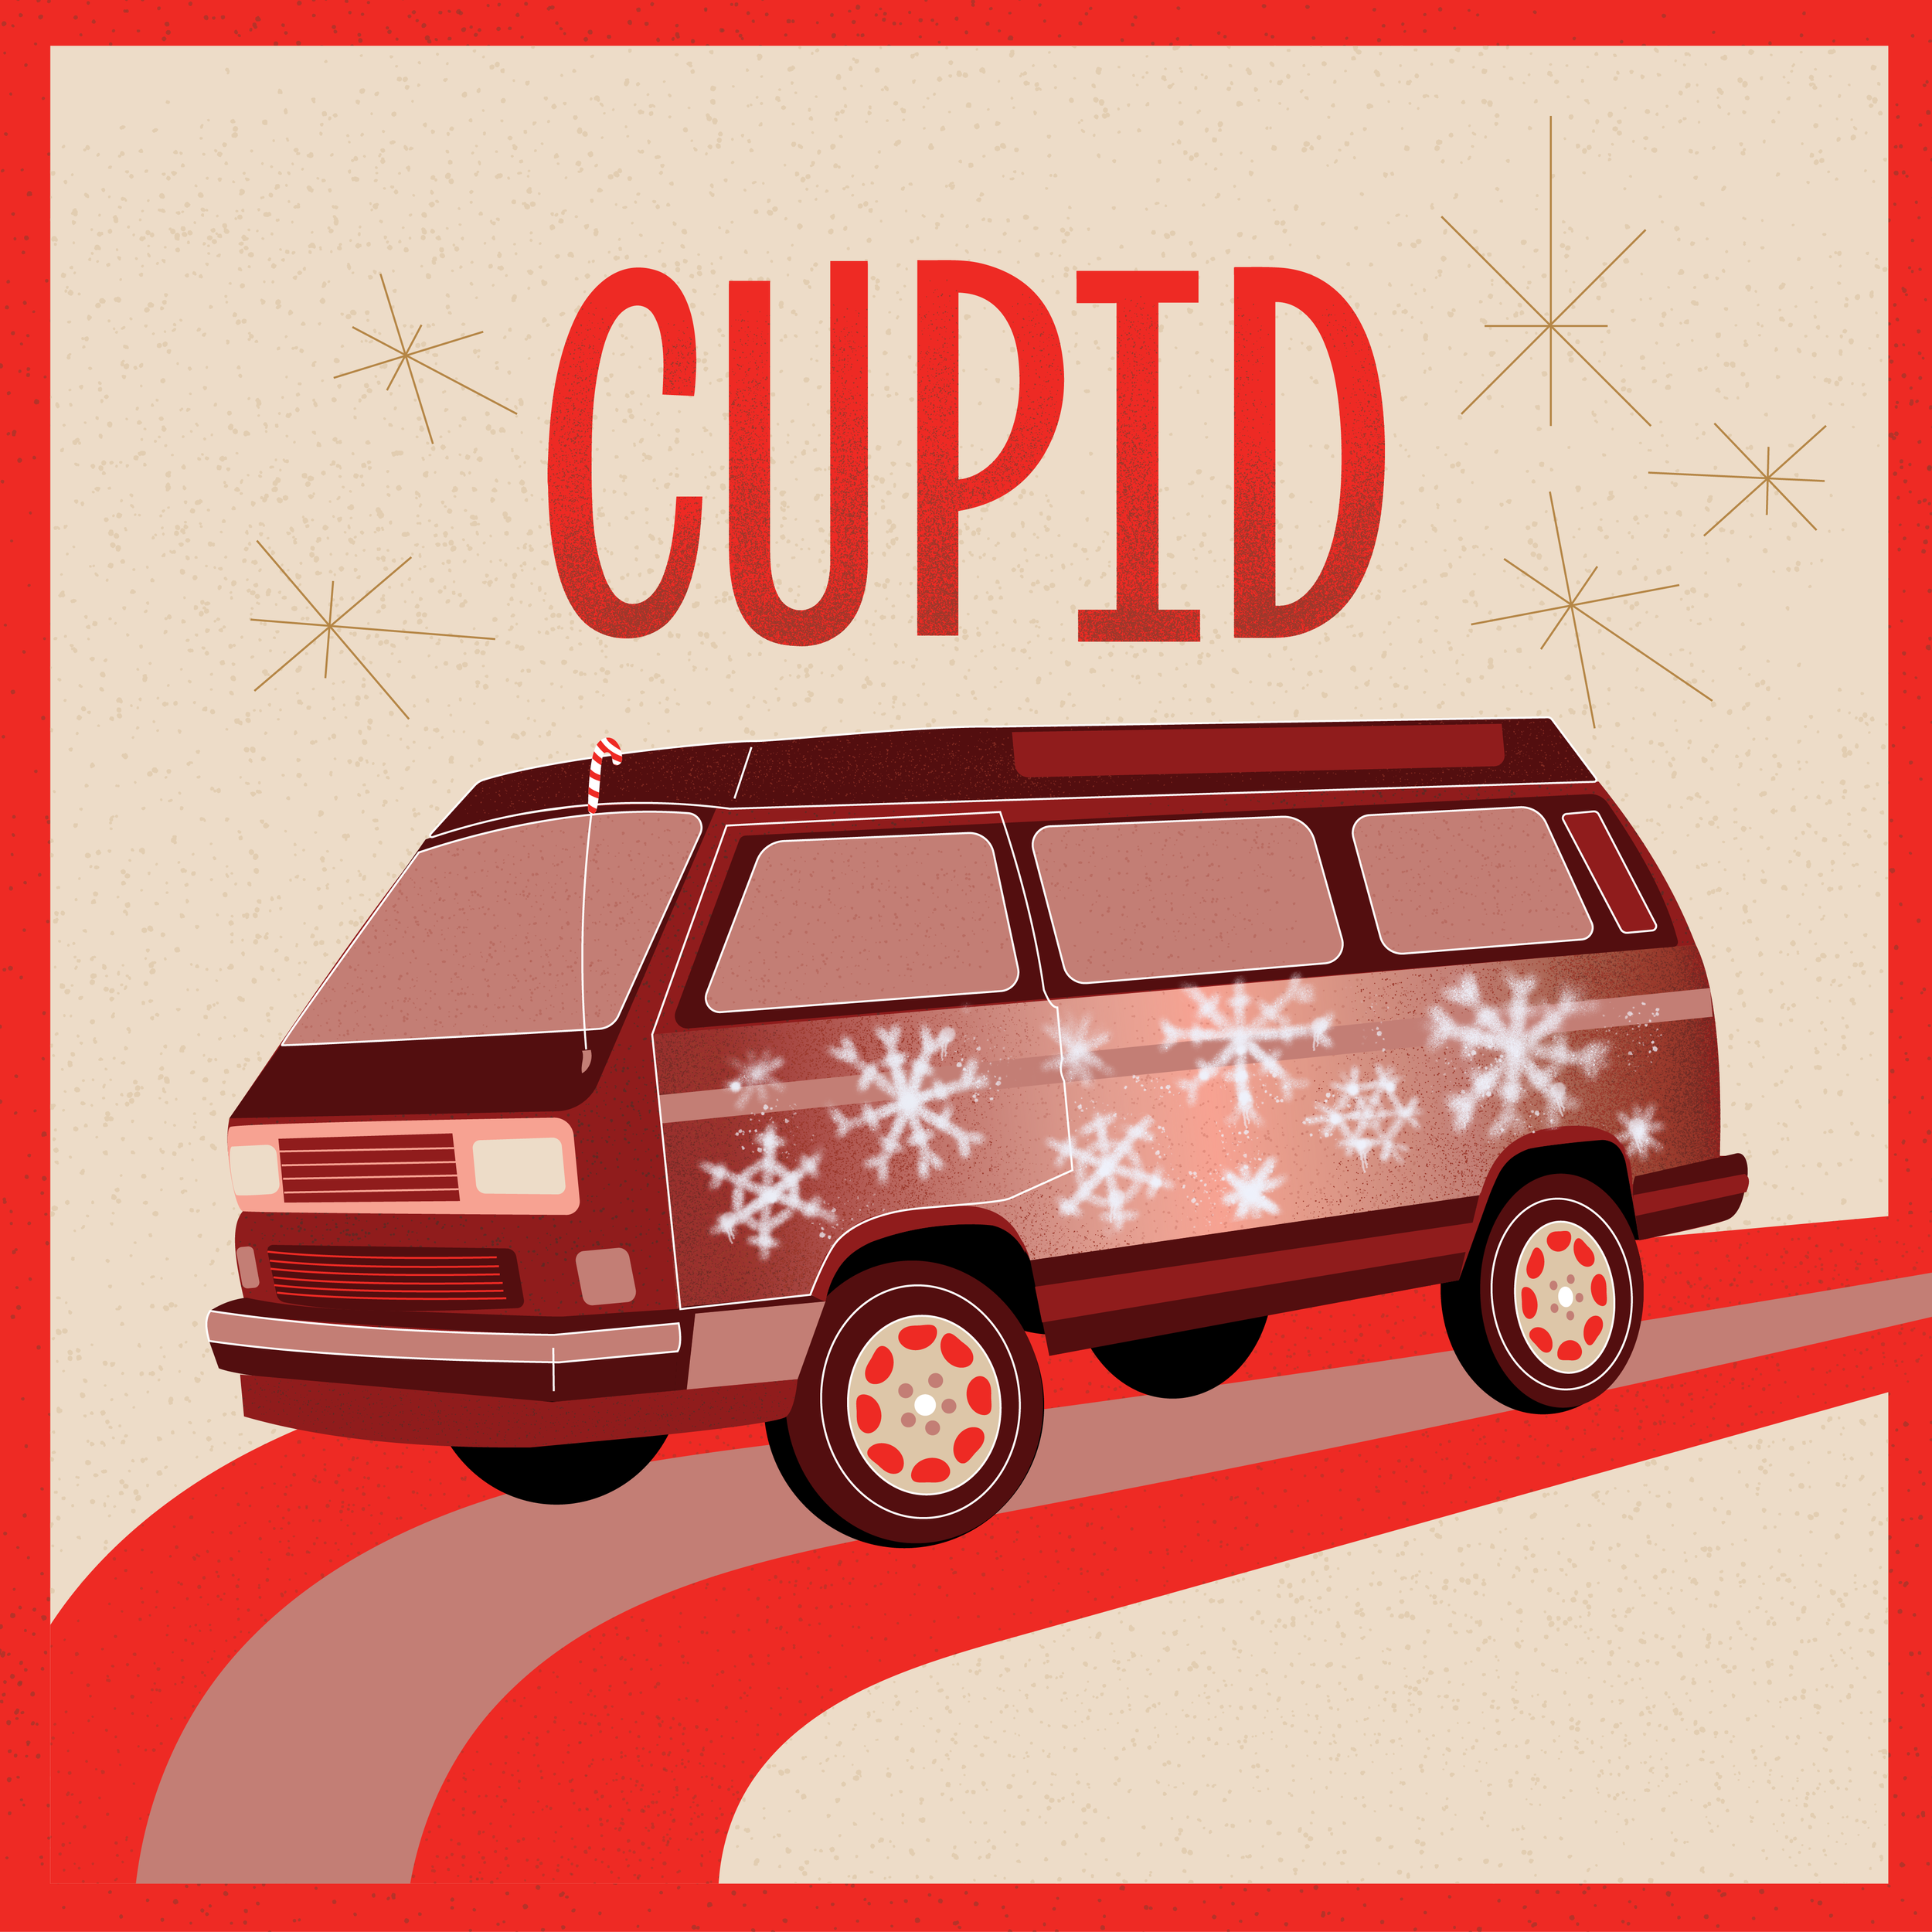 6 Cupid-01.png